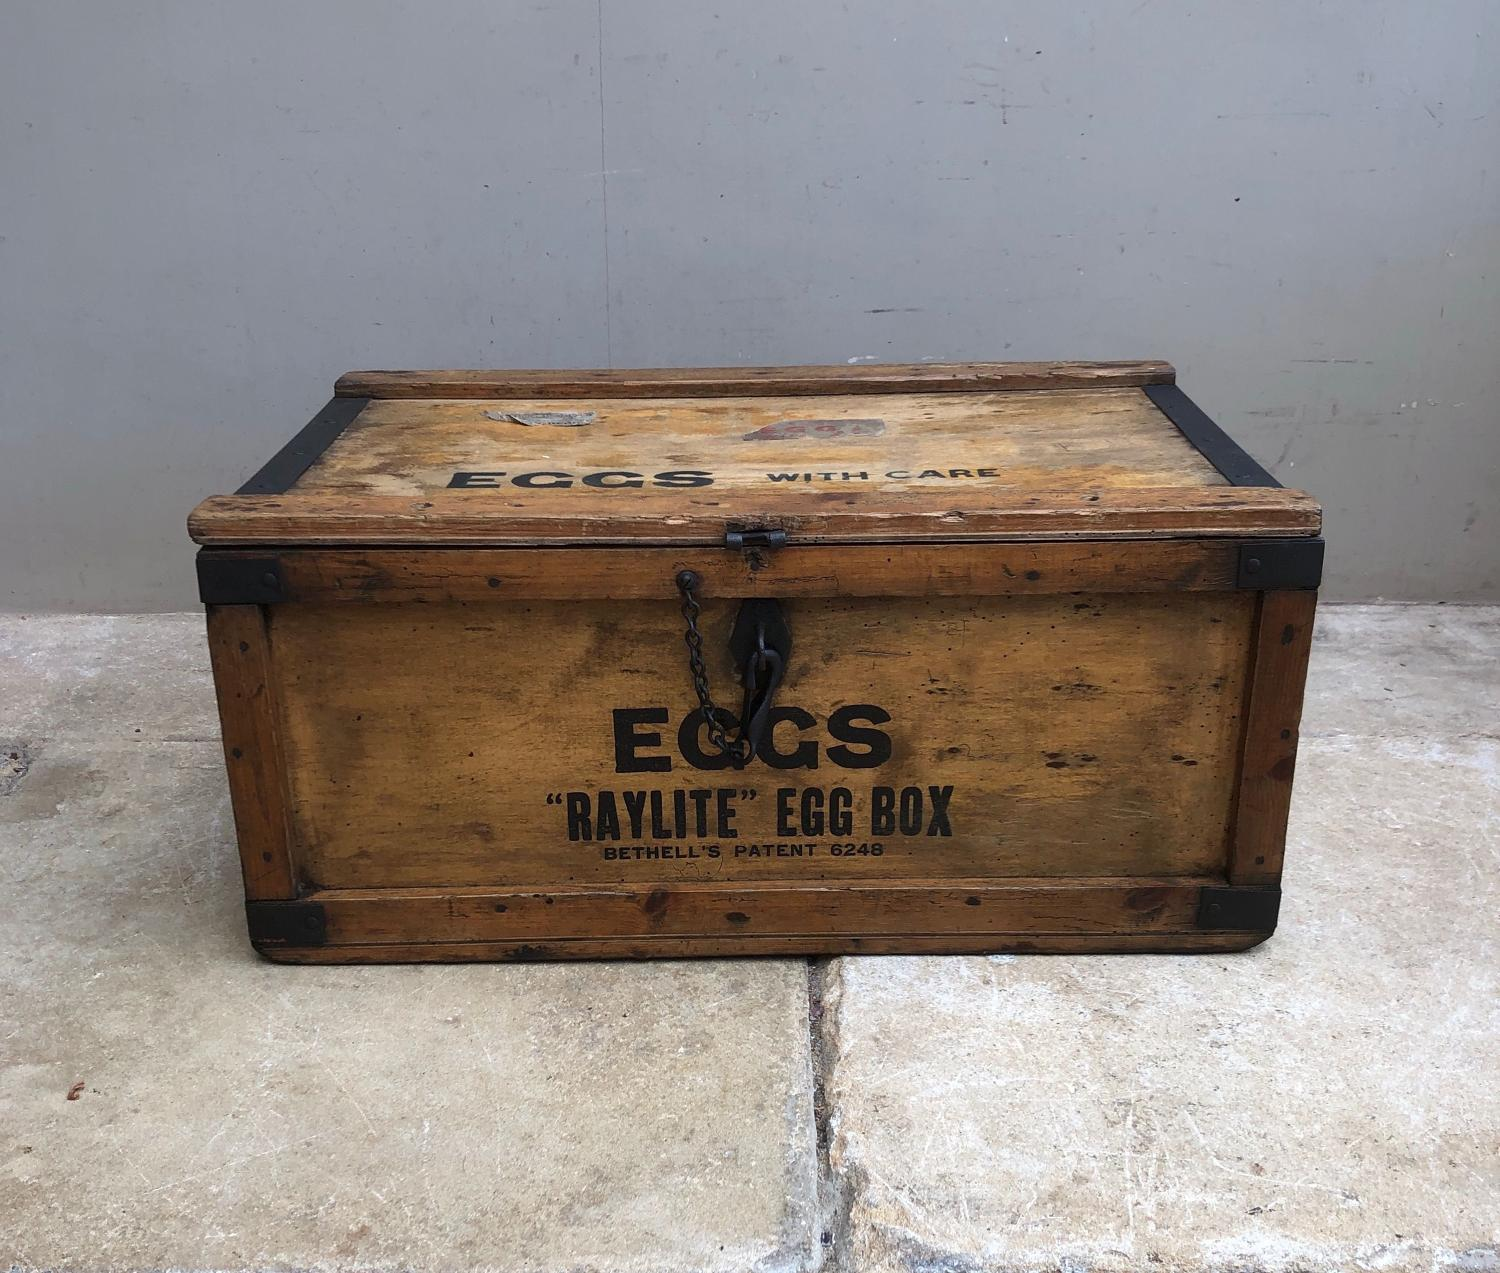 Huge Early 20th Century Raylite Travelling Eggs Box - Complete